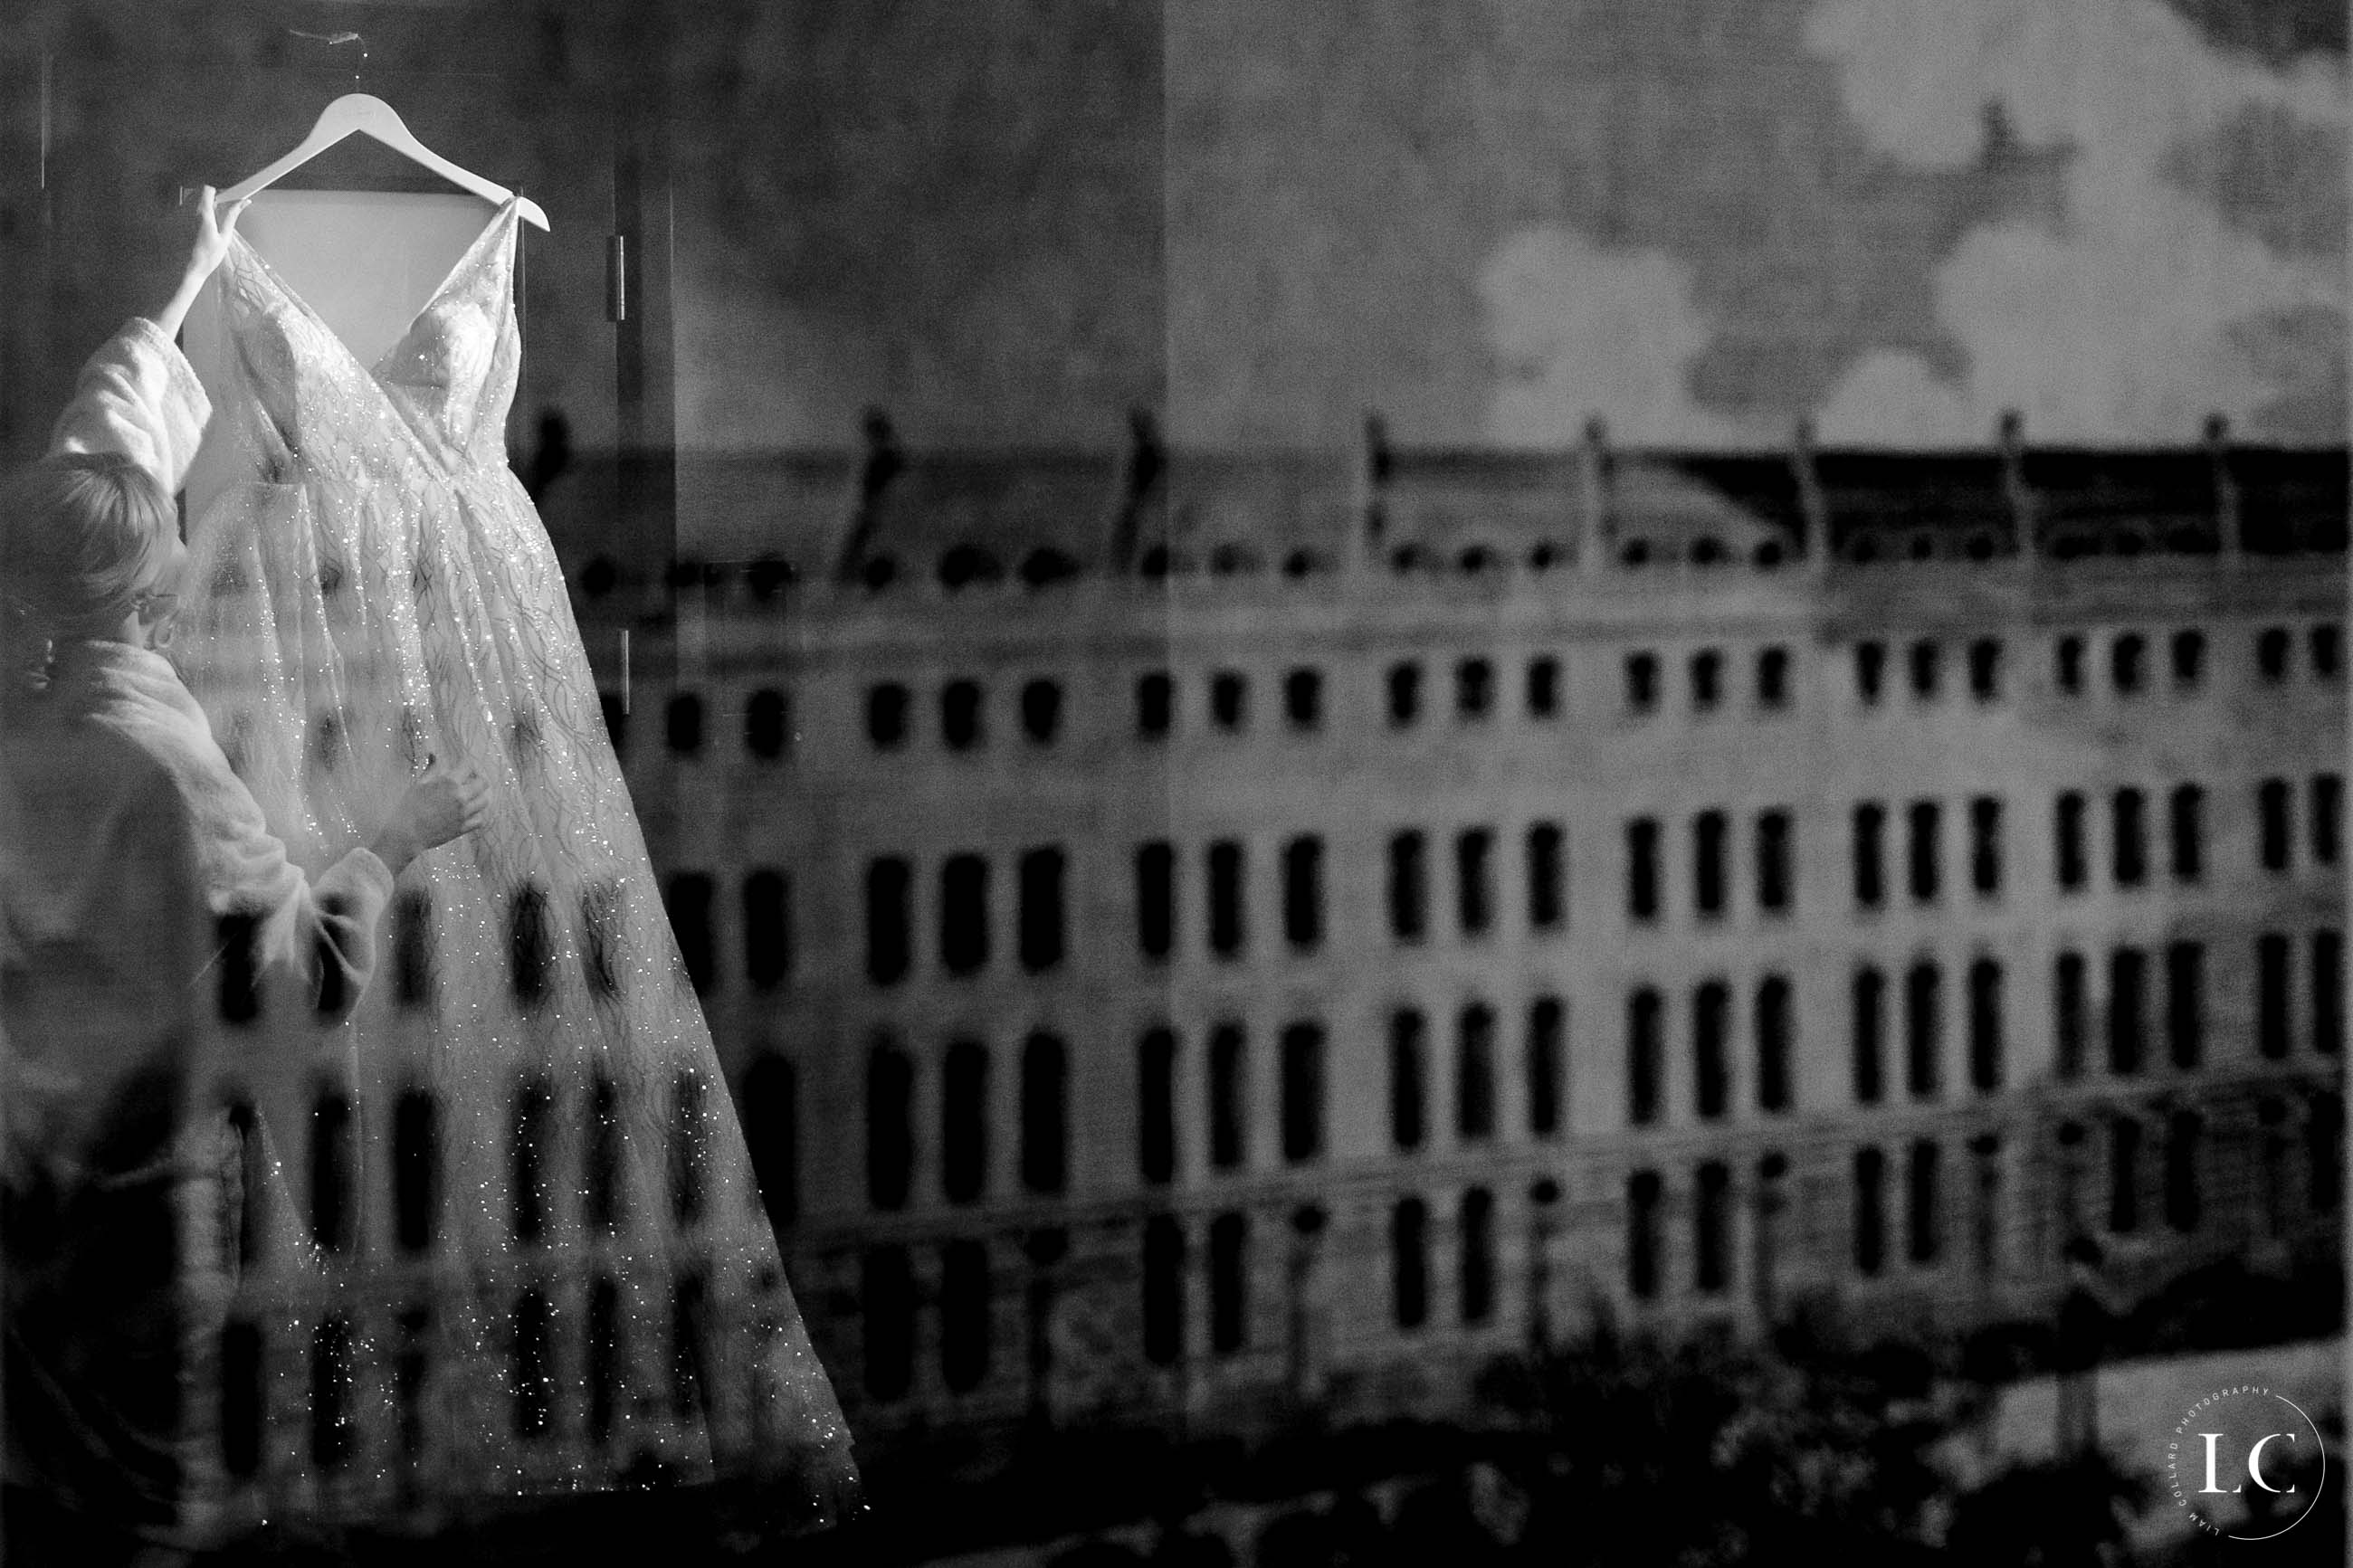 Reflection of bride and building